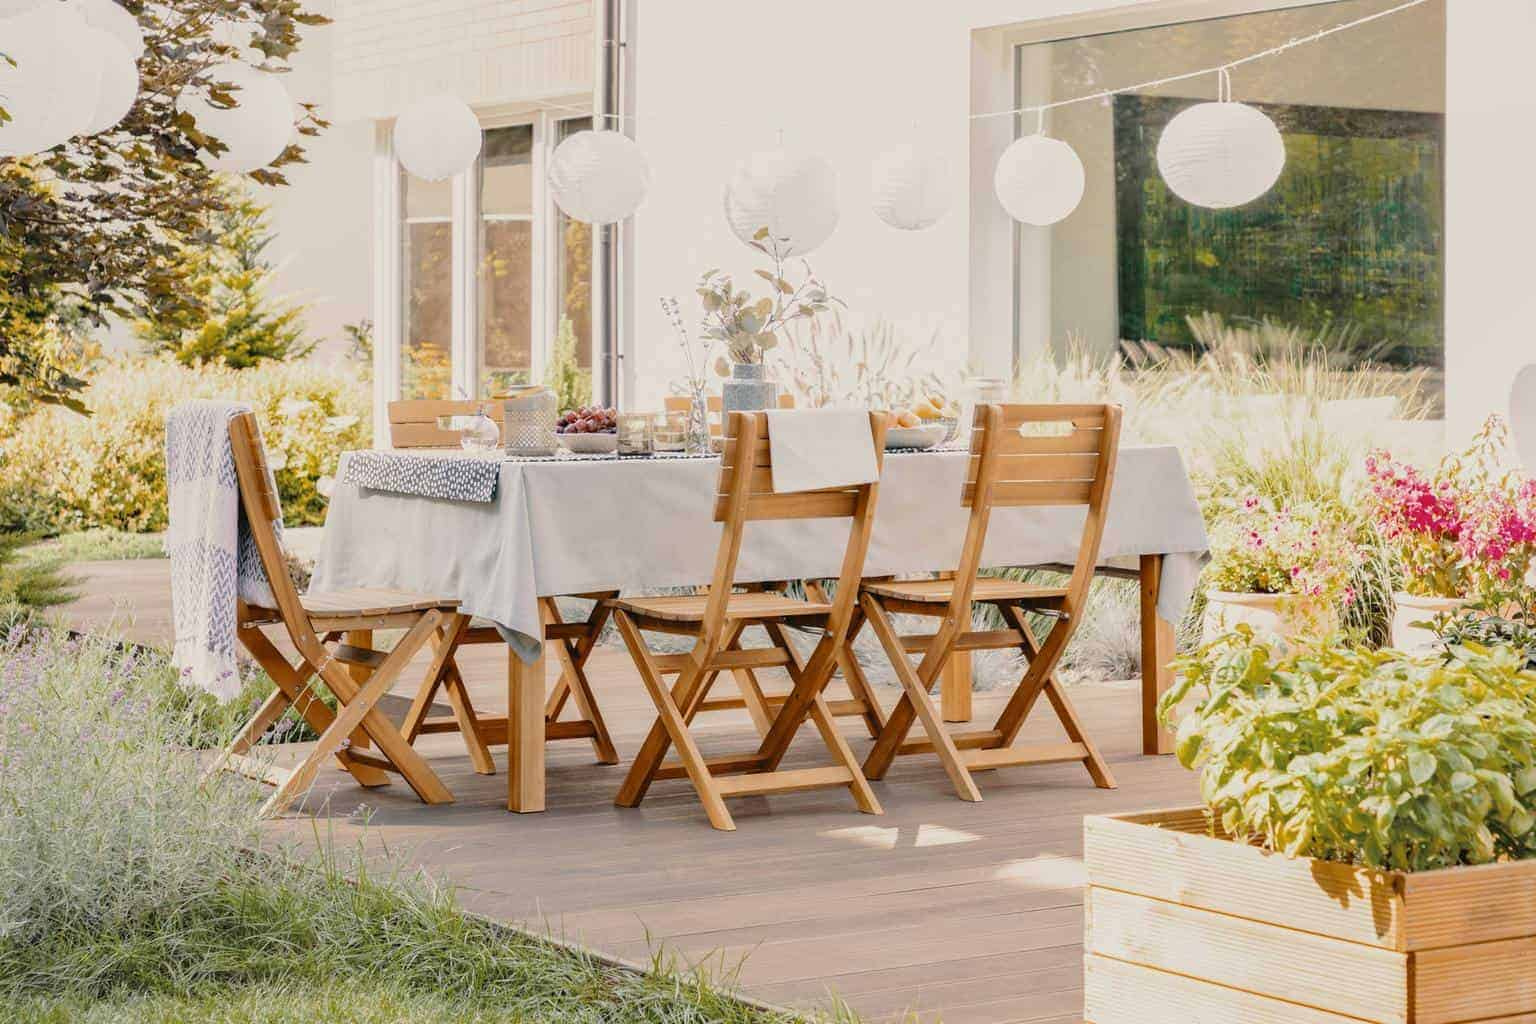 Outdoor dining room with wooden garden furniture set with table and chairs